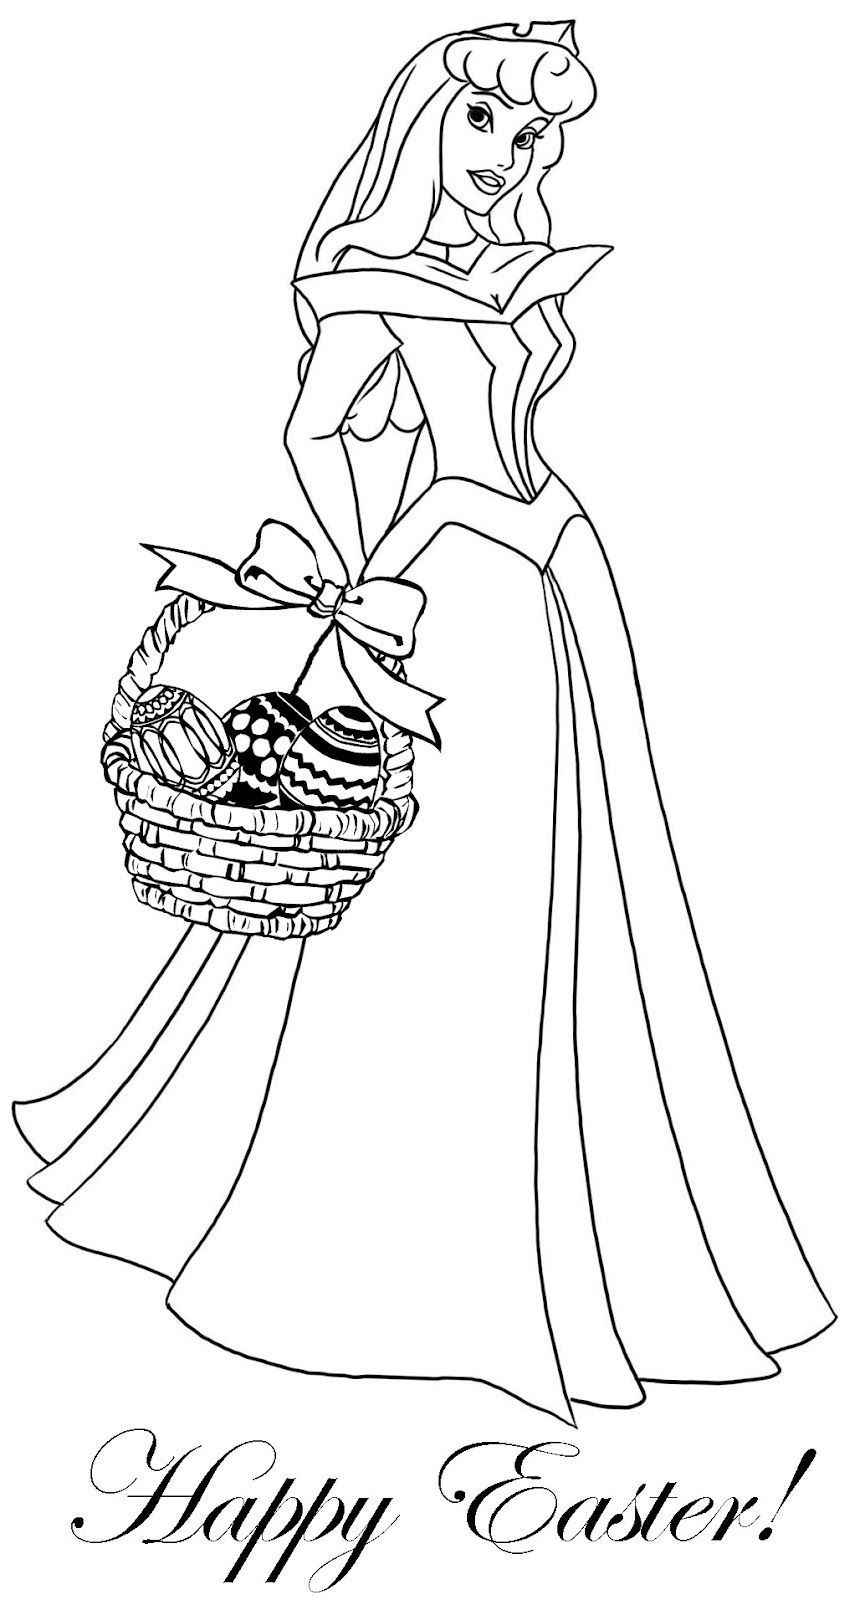 Princess Coloring Pages Easter Theme Coloring Page Princess Coloring Pages Disney Princess Coloring Pages Princess Coloring